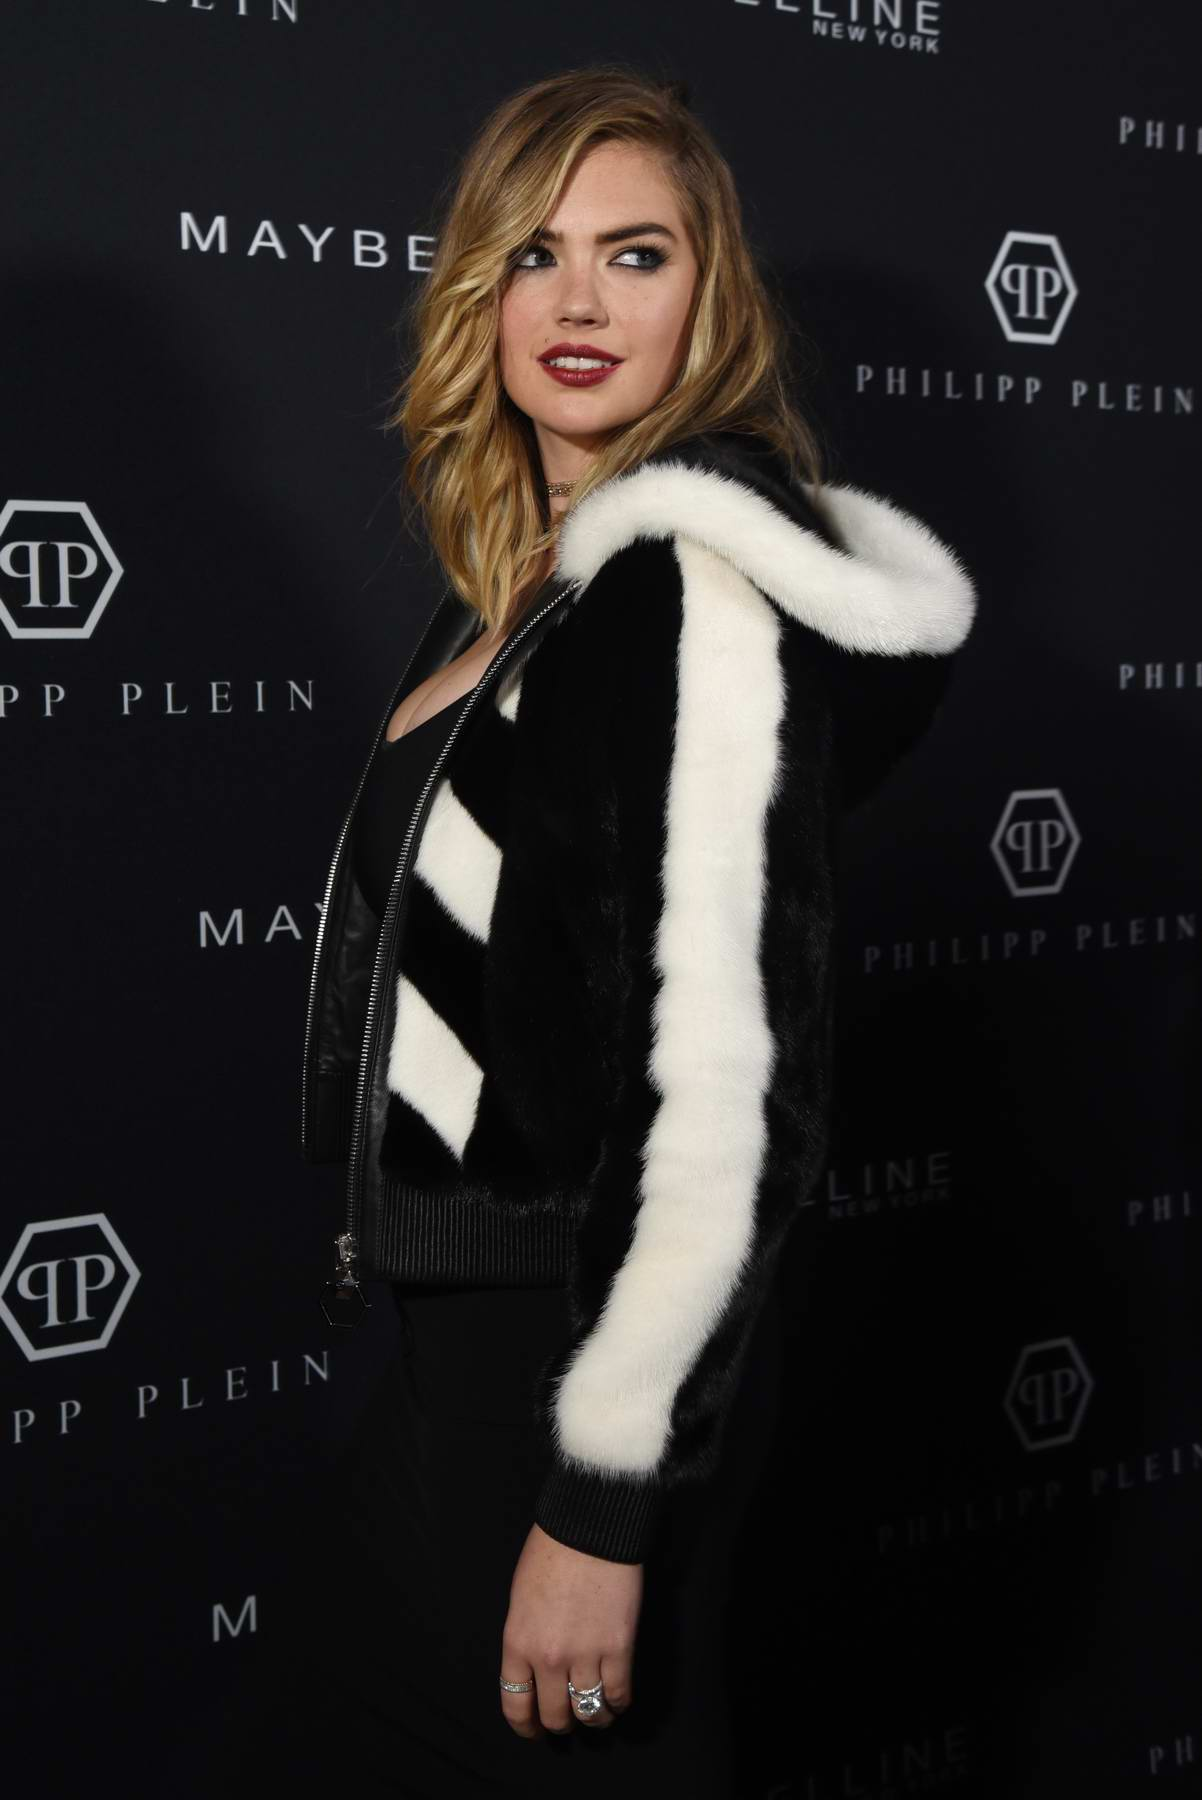 Kate Upton at Philipp Plein Show during New York Fashion Week in New York City